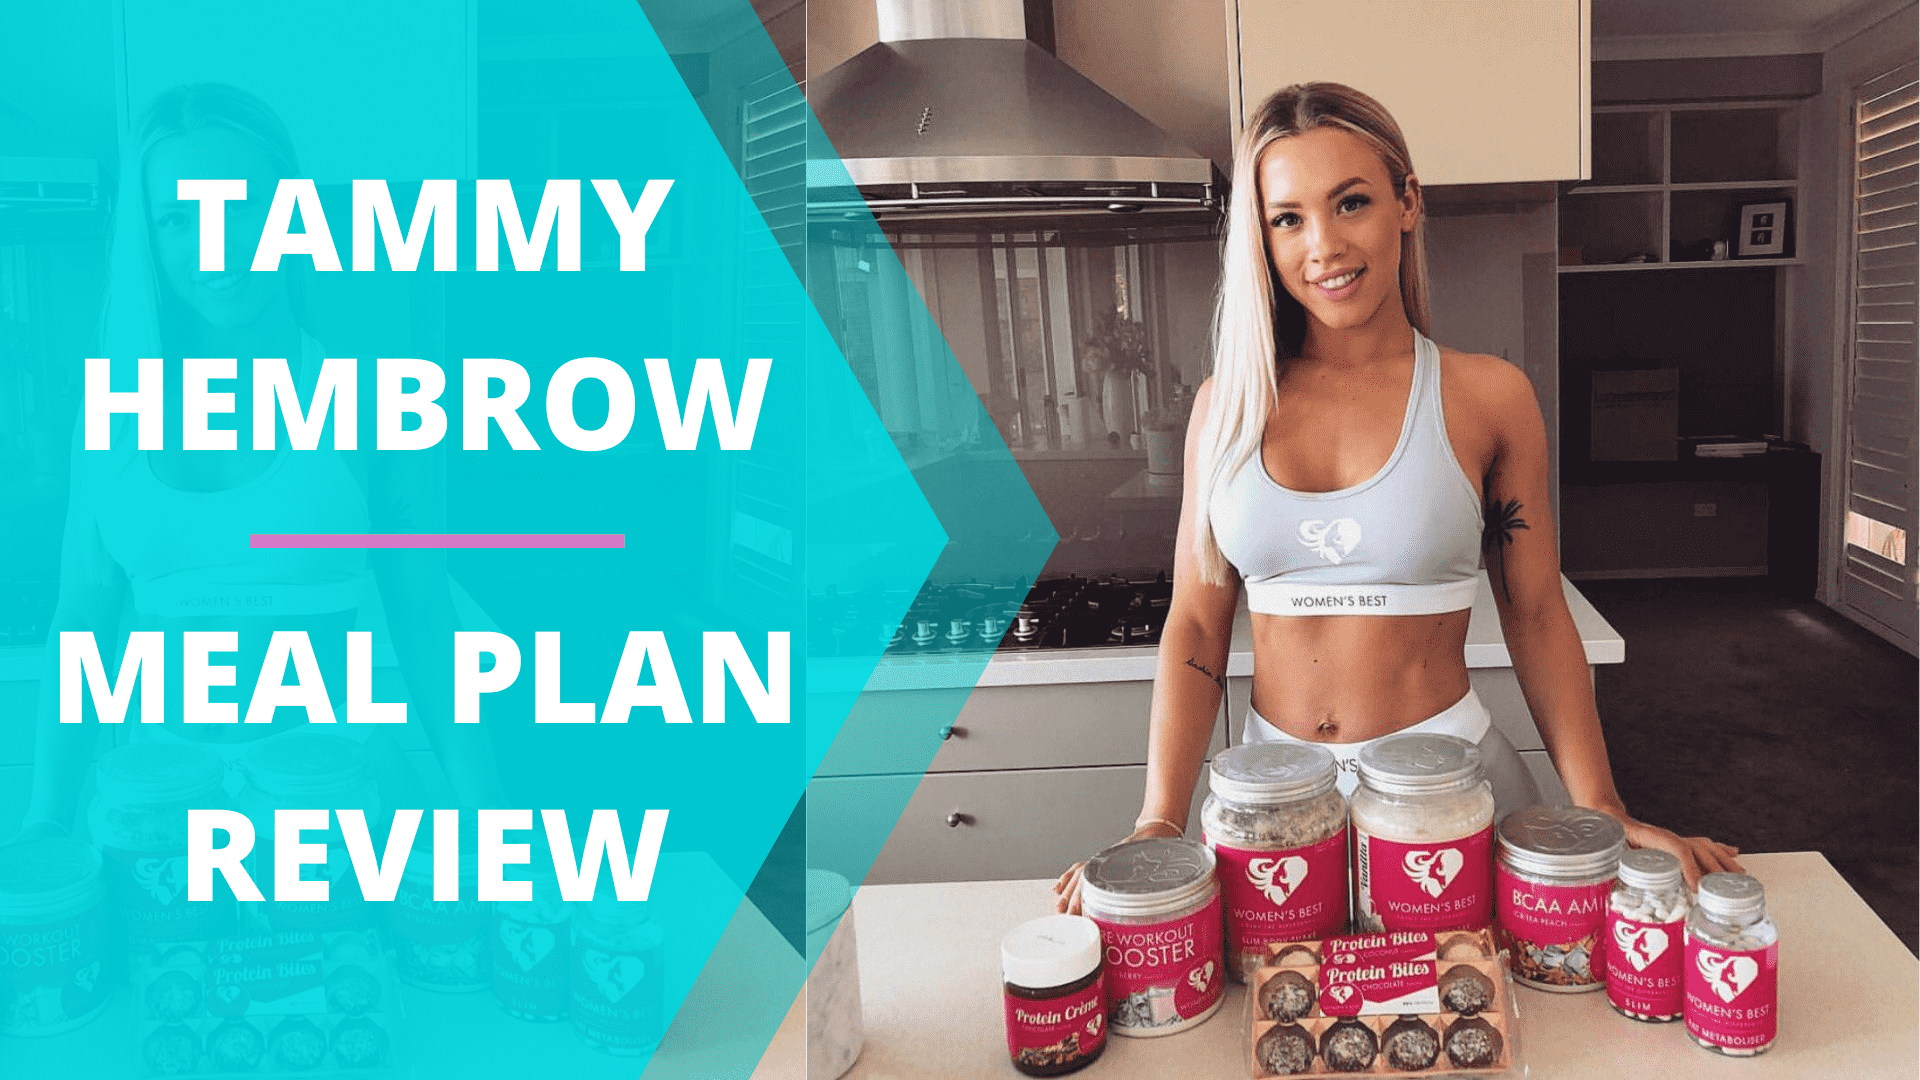 Tammy Hembrow Meal Plan Review